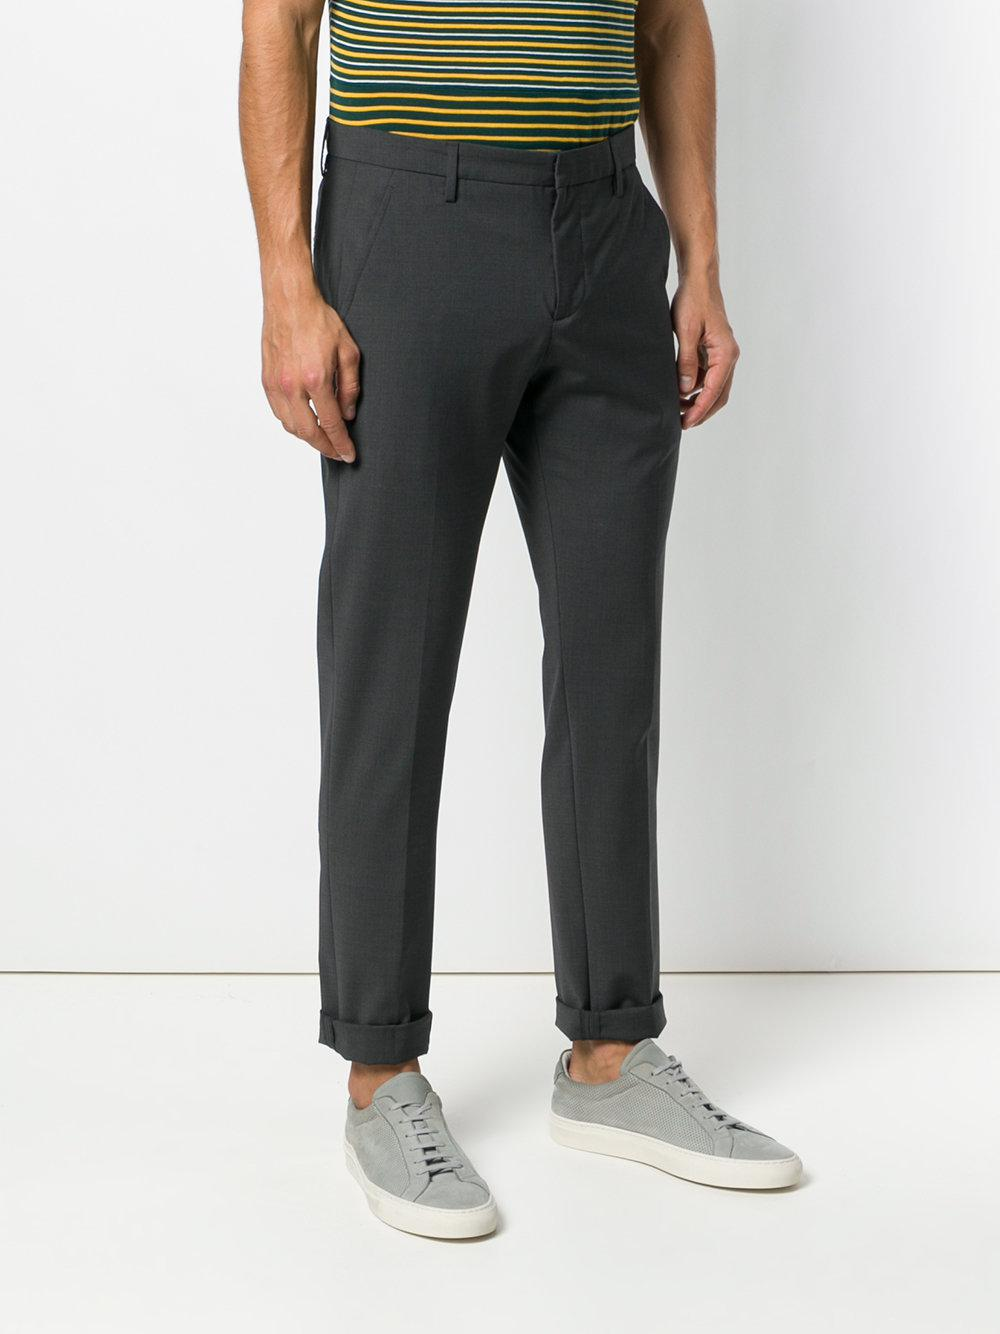 Dondup Wool Straight Leg Trousers in Grey (Grey) for Men